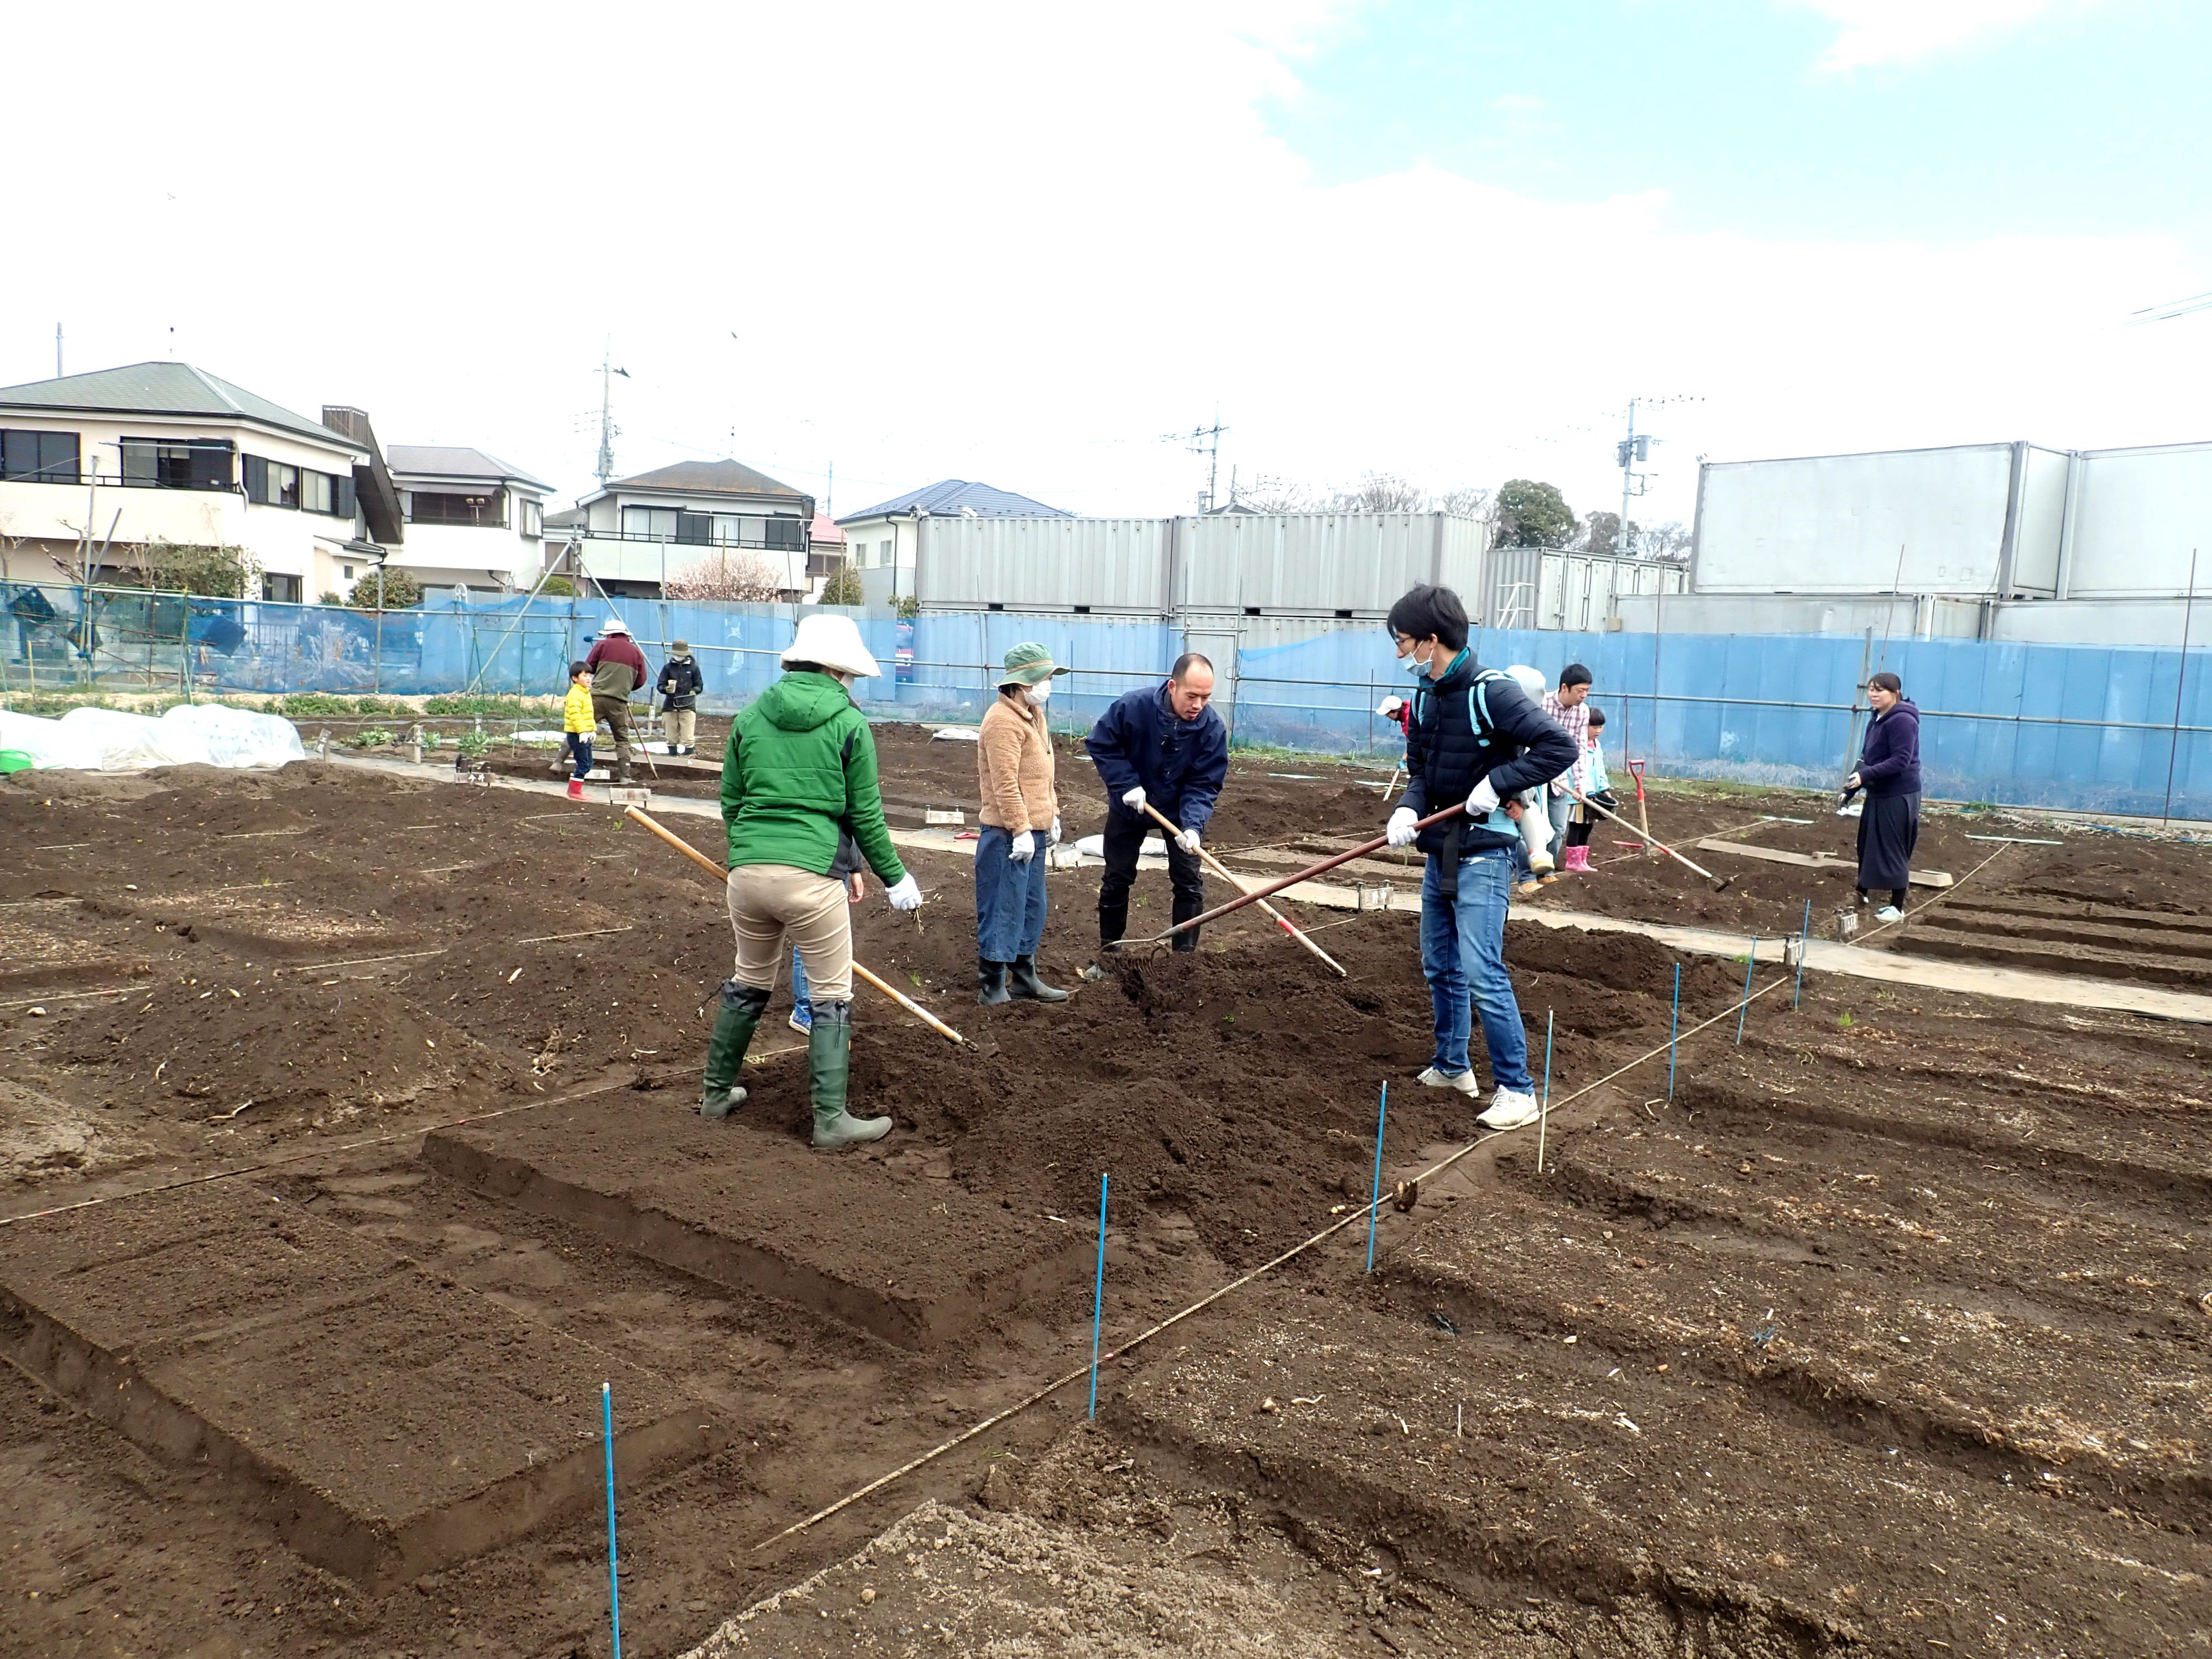 Here S How To Join A Community Garden In Tokyo Savvy Tokyo